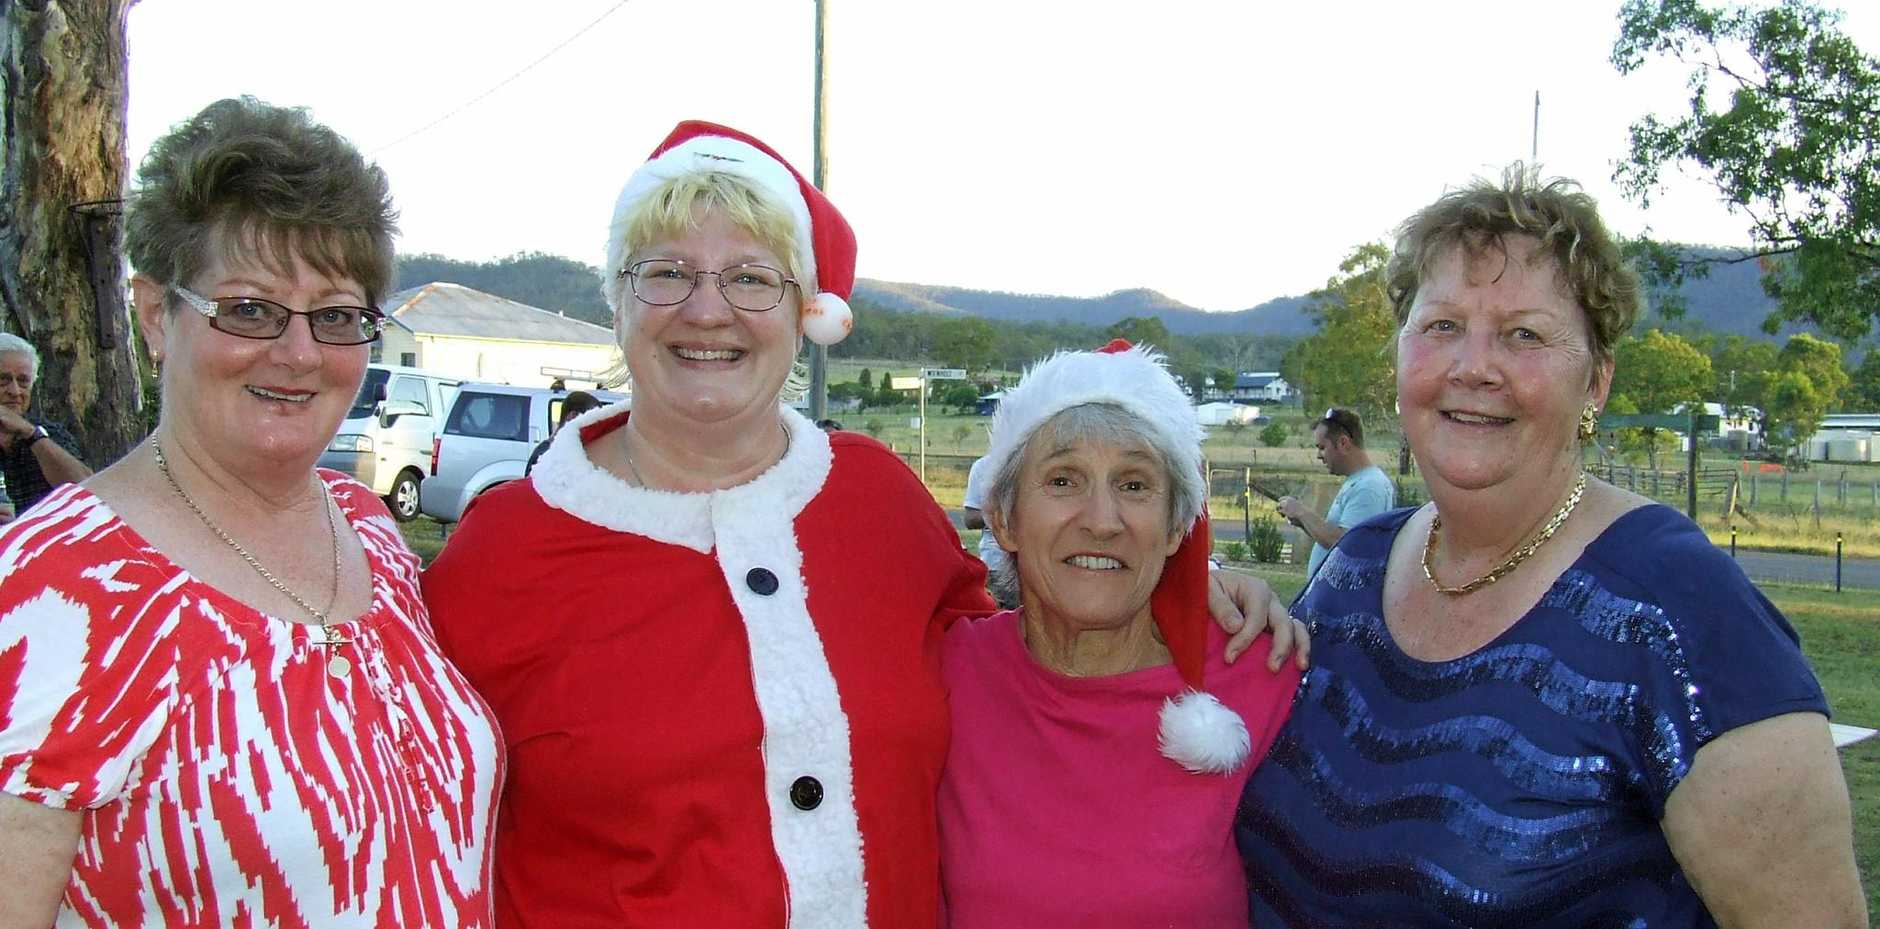 FESTIVE: The Maryvale Progress Association is looking forward to the town's Carols in the Park event today.